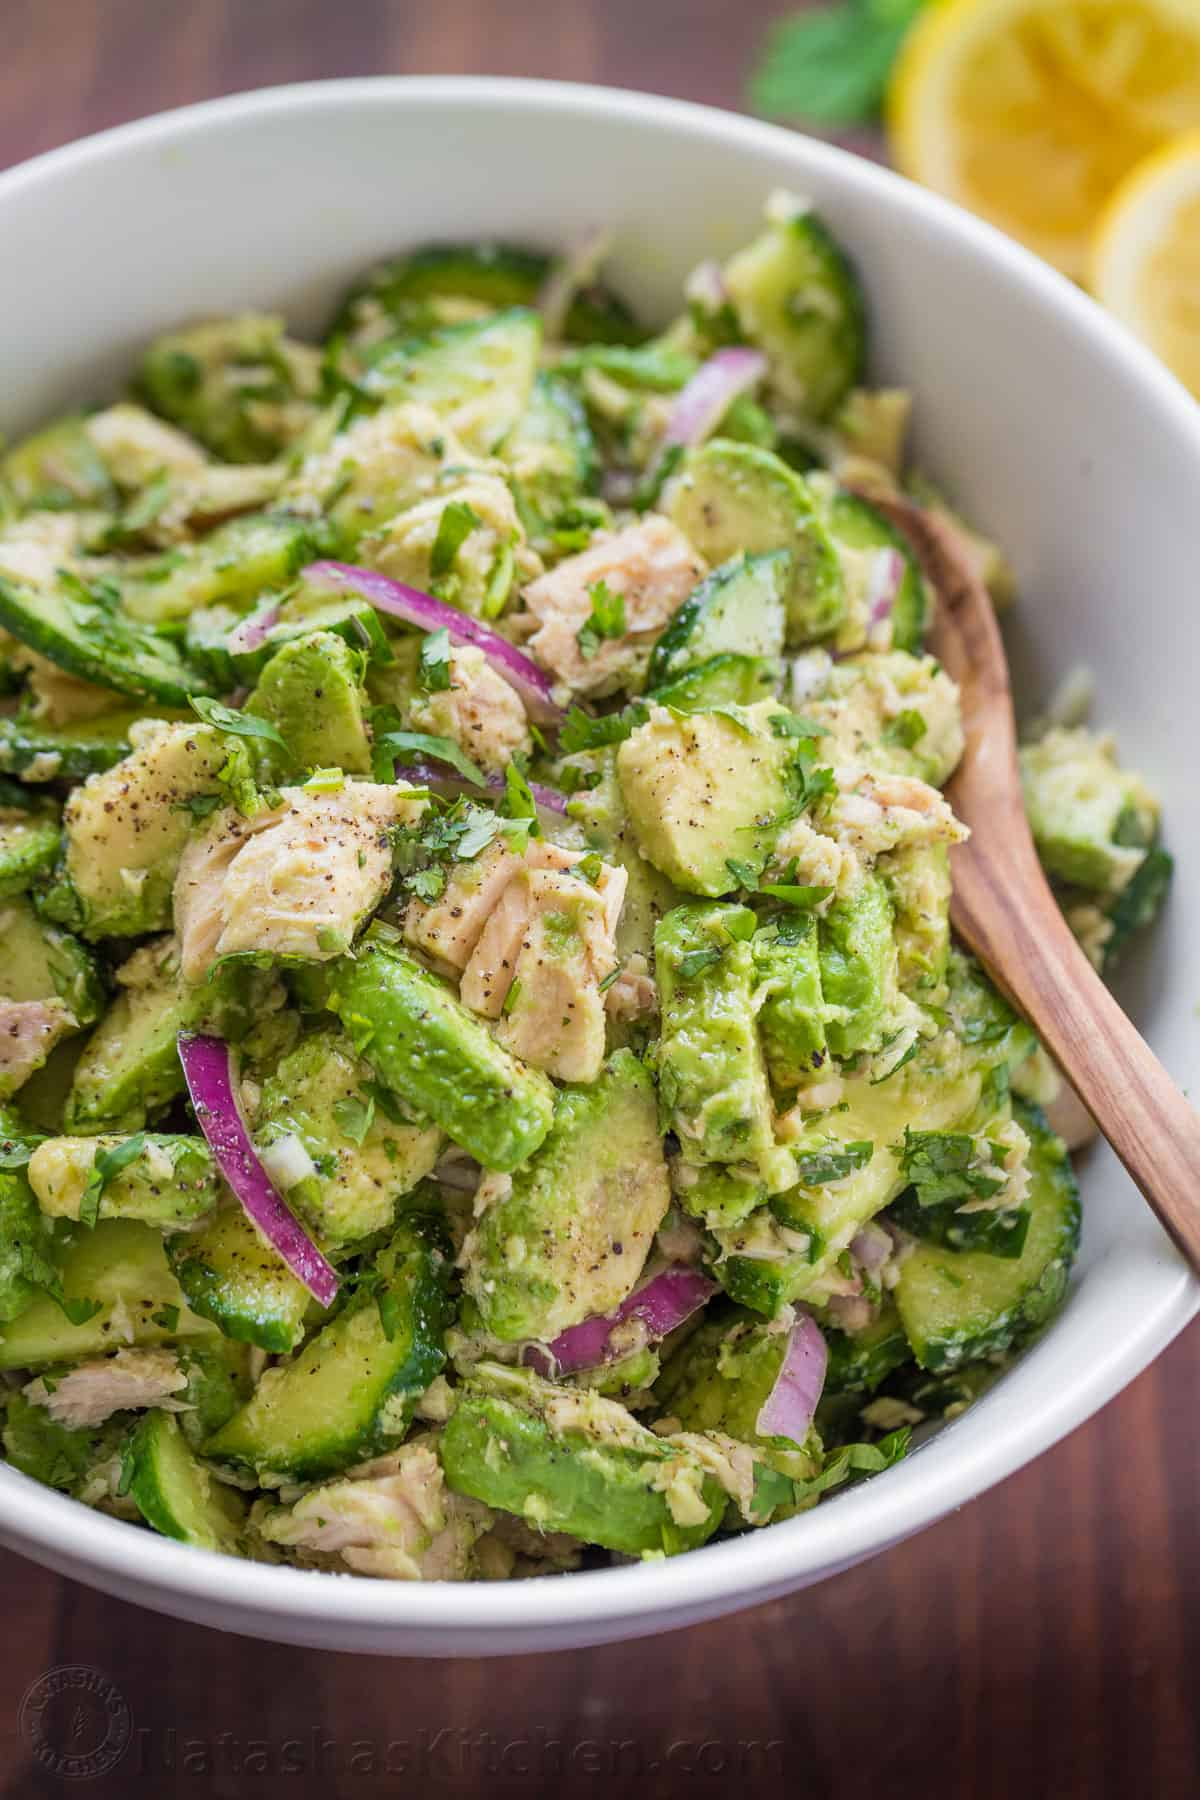 Avocado Tuna Salad Recipe Video Natashaskitchen Com